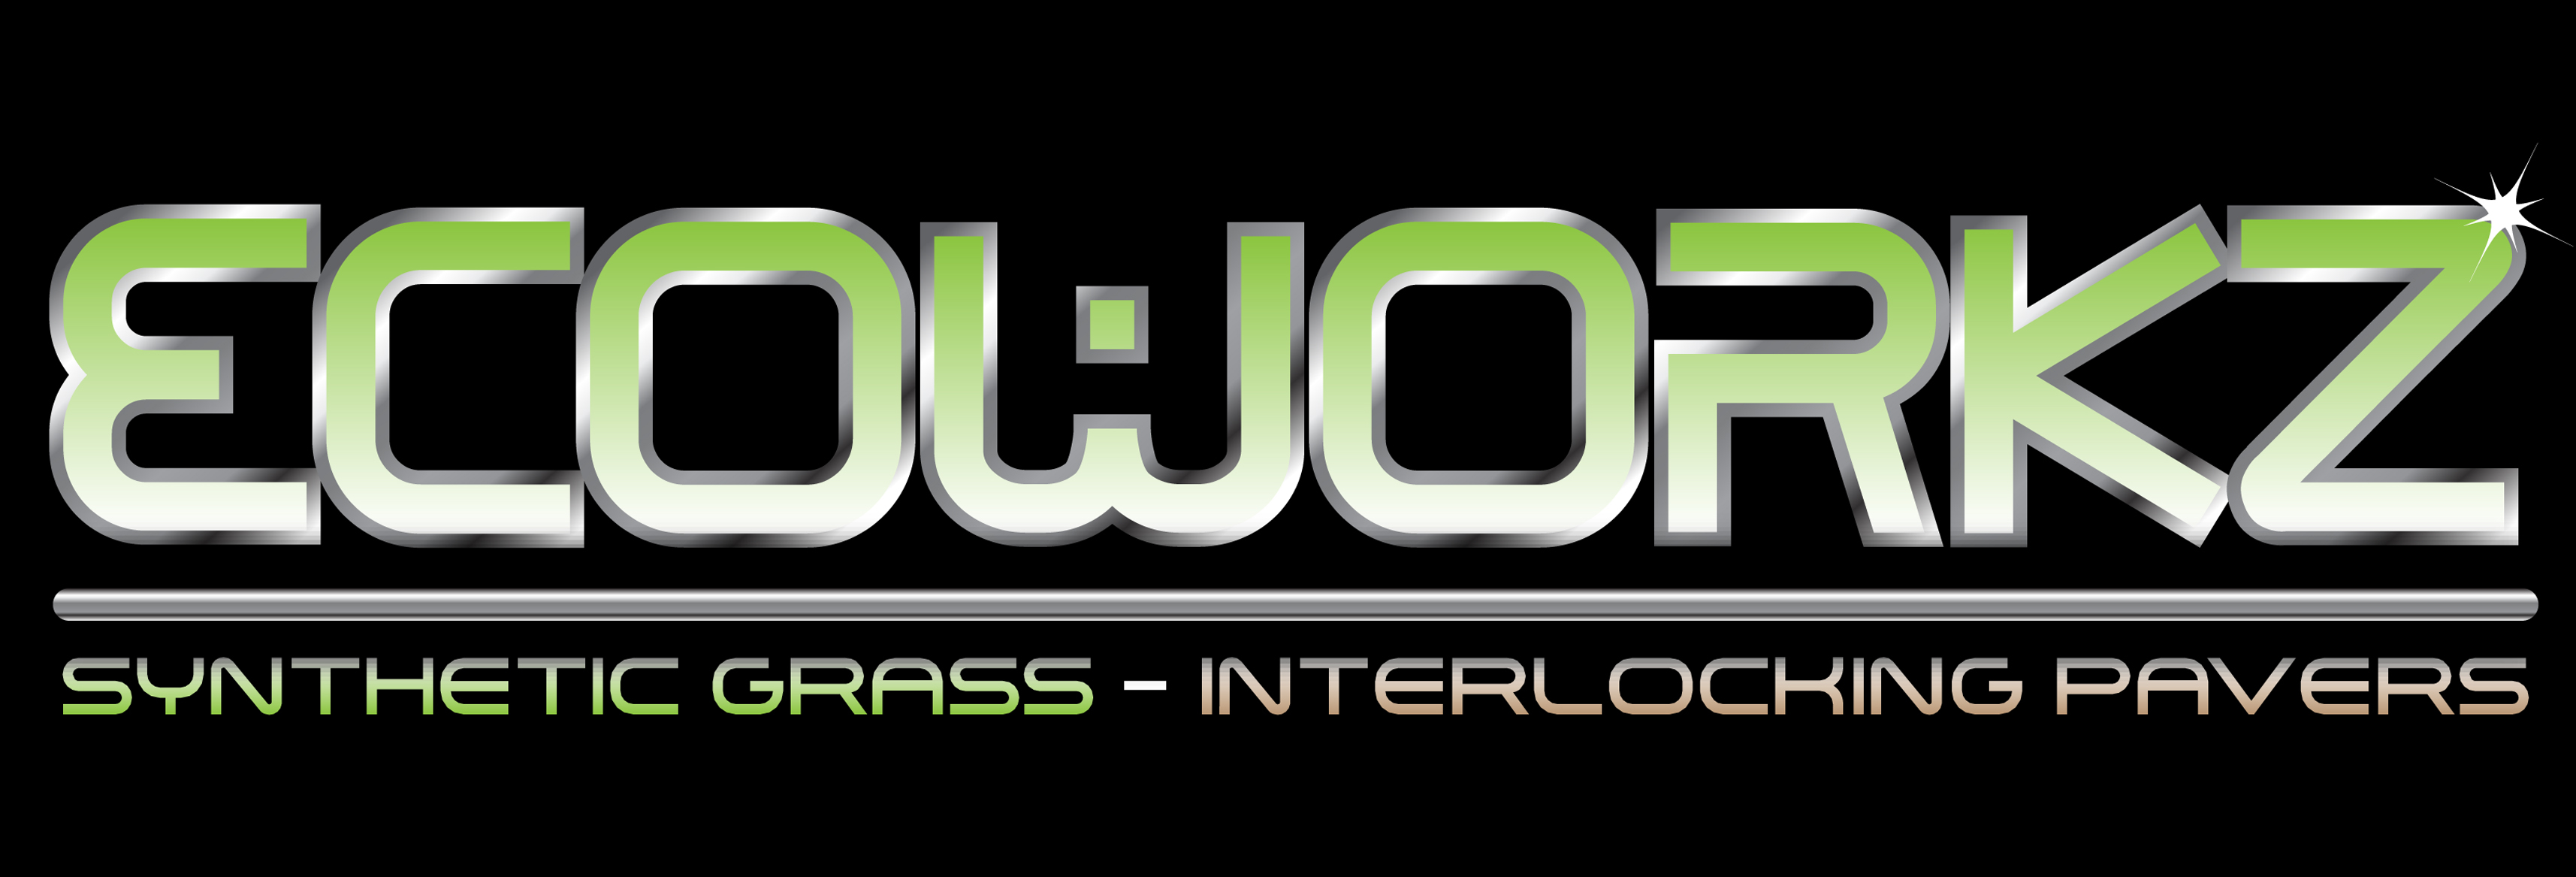 Ecoworkz Synthetic Grass image 1